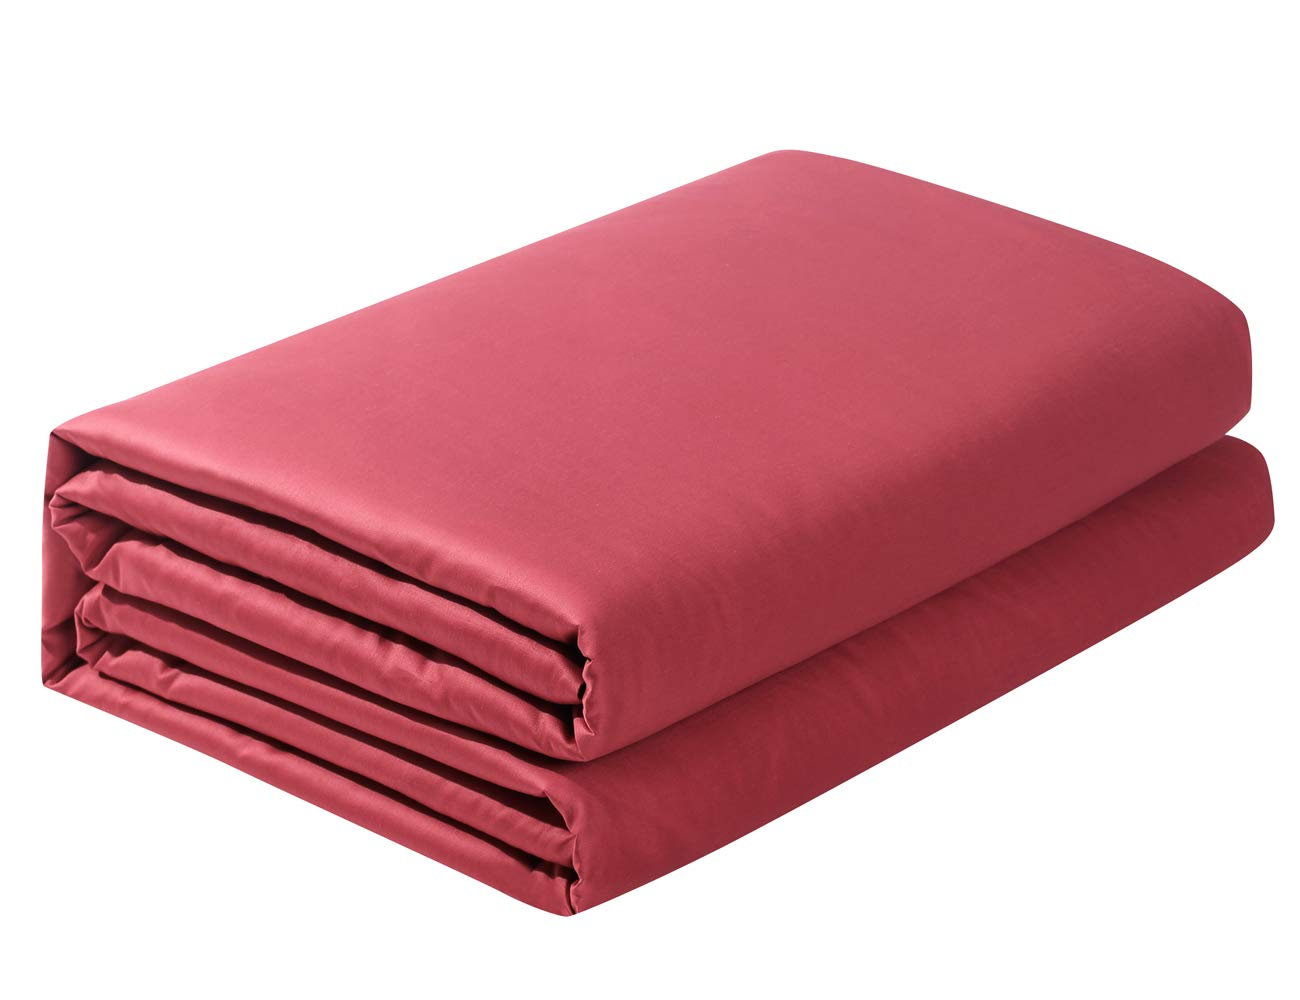 PHF Flat Sheet 300 Thread Count Satin 100/% Cotton Natural Soft Durable Breathable Pack of 1 Twin Size Red